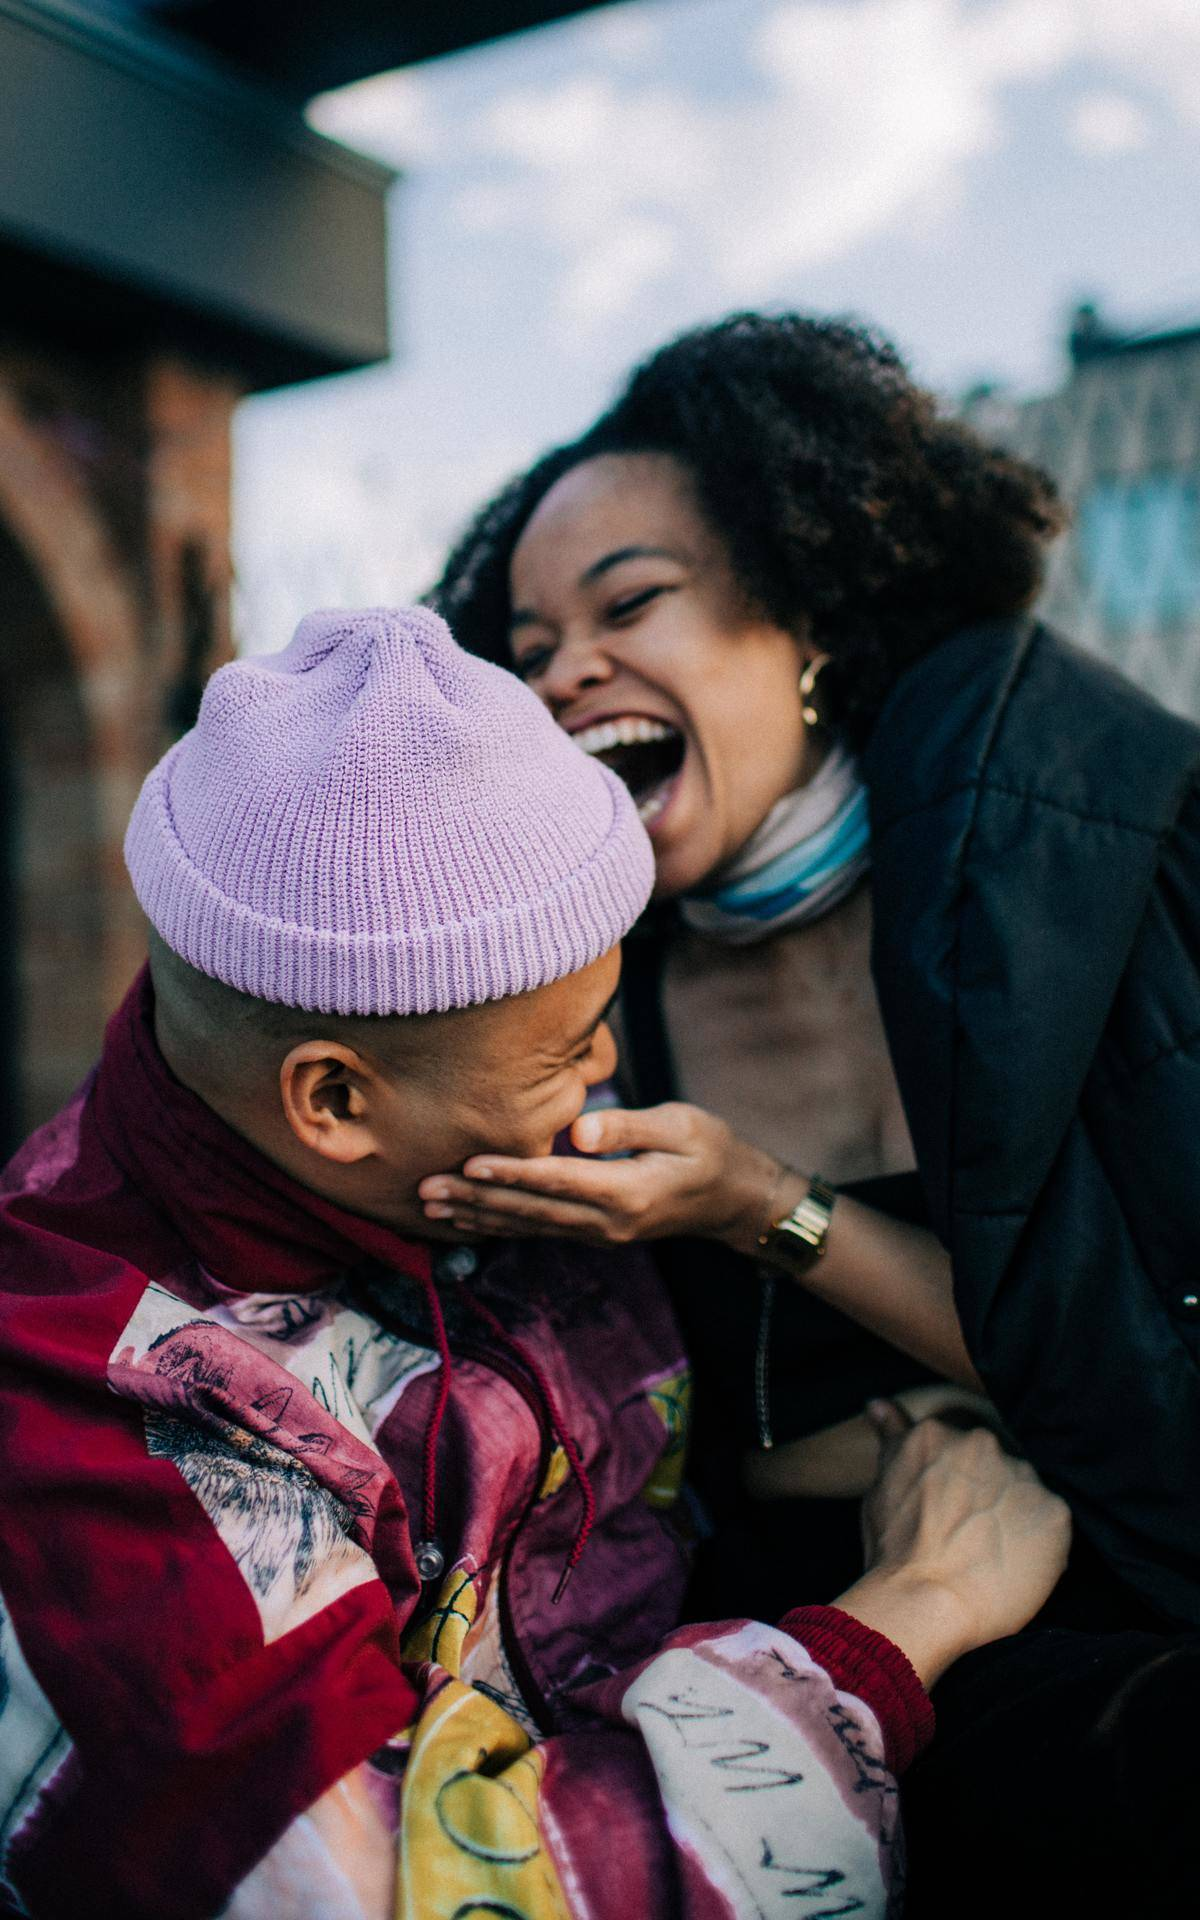 a guy and girl sitting outside laughing together